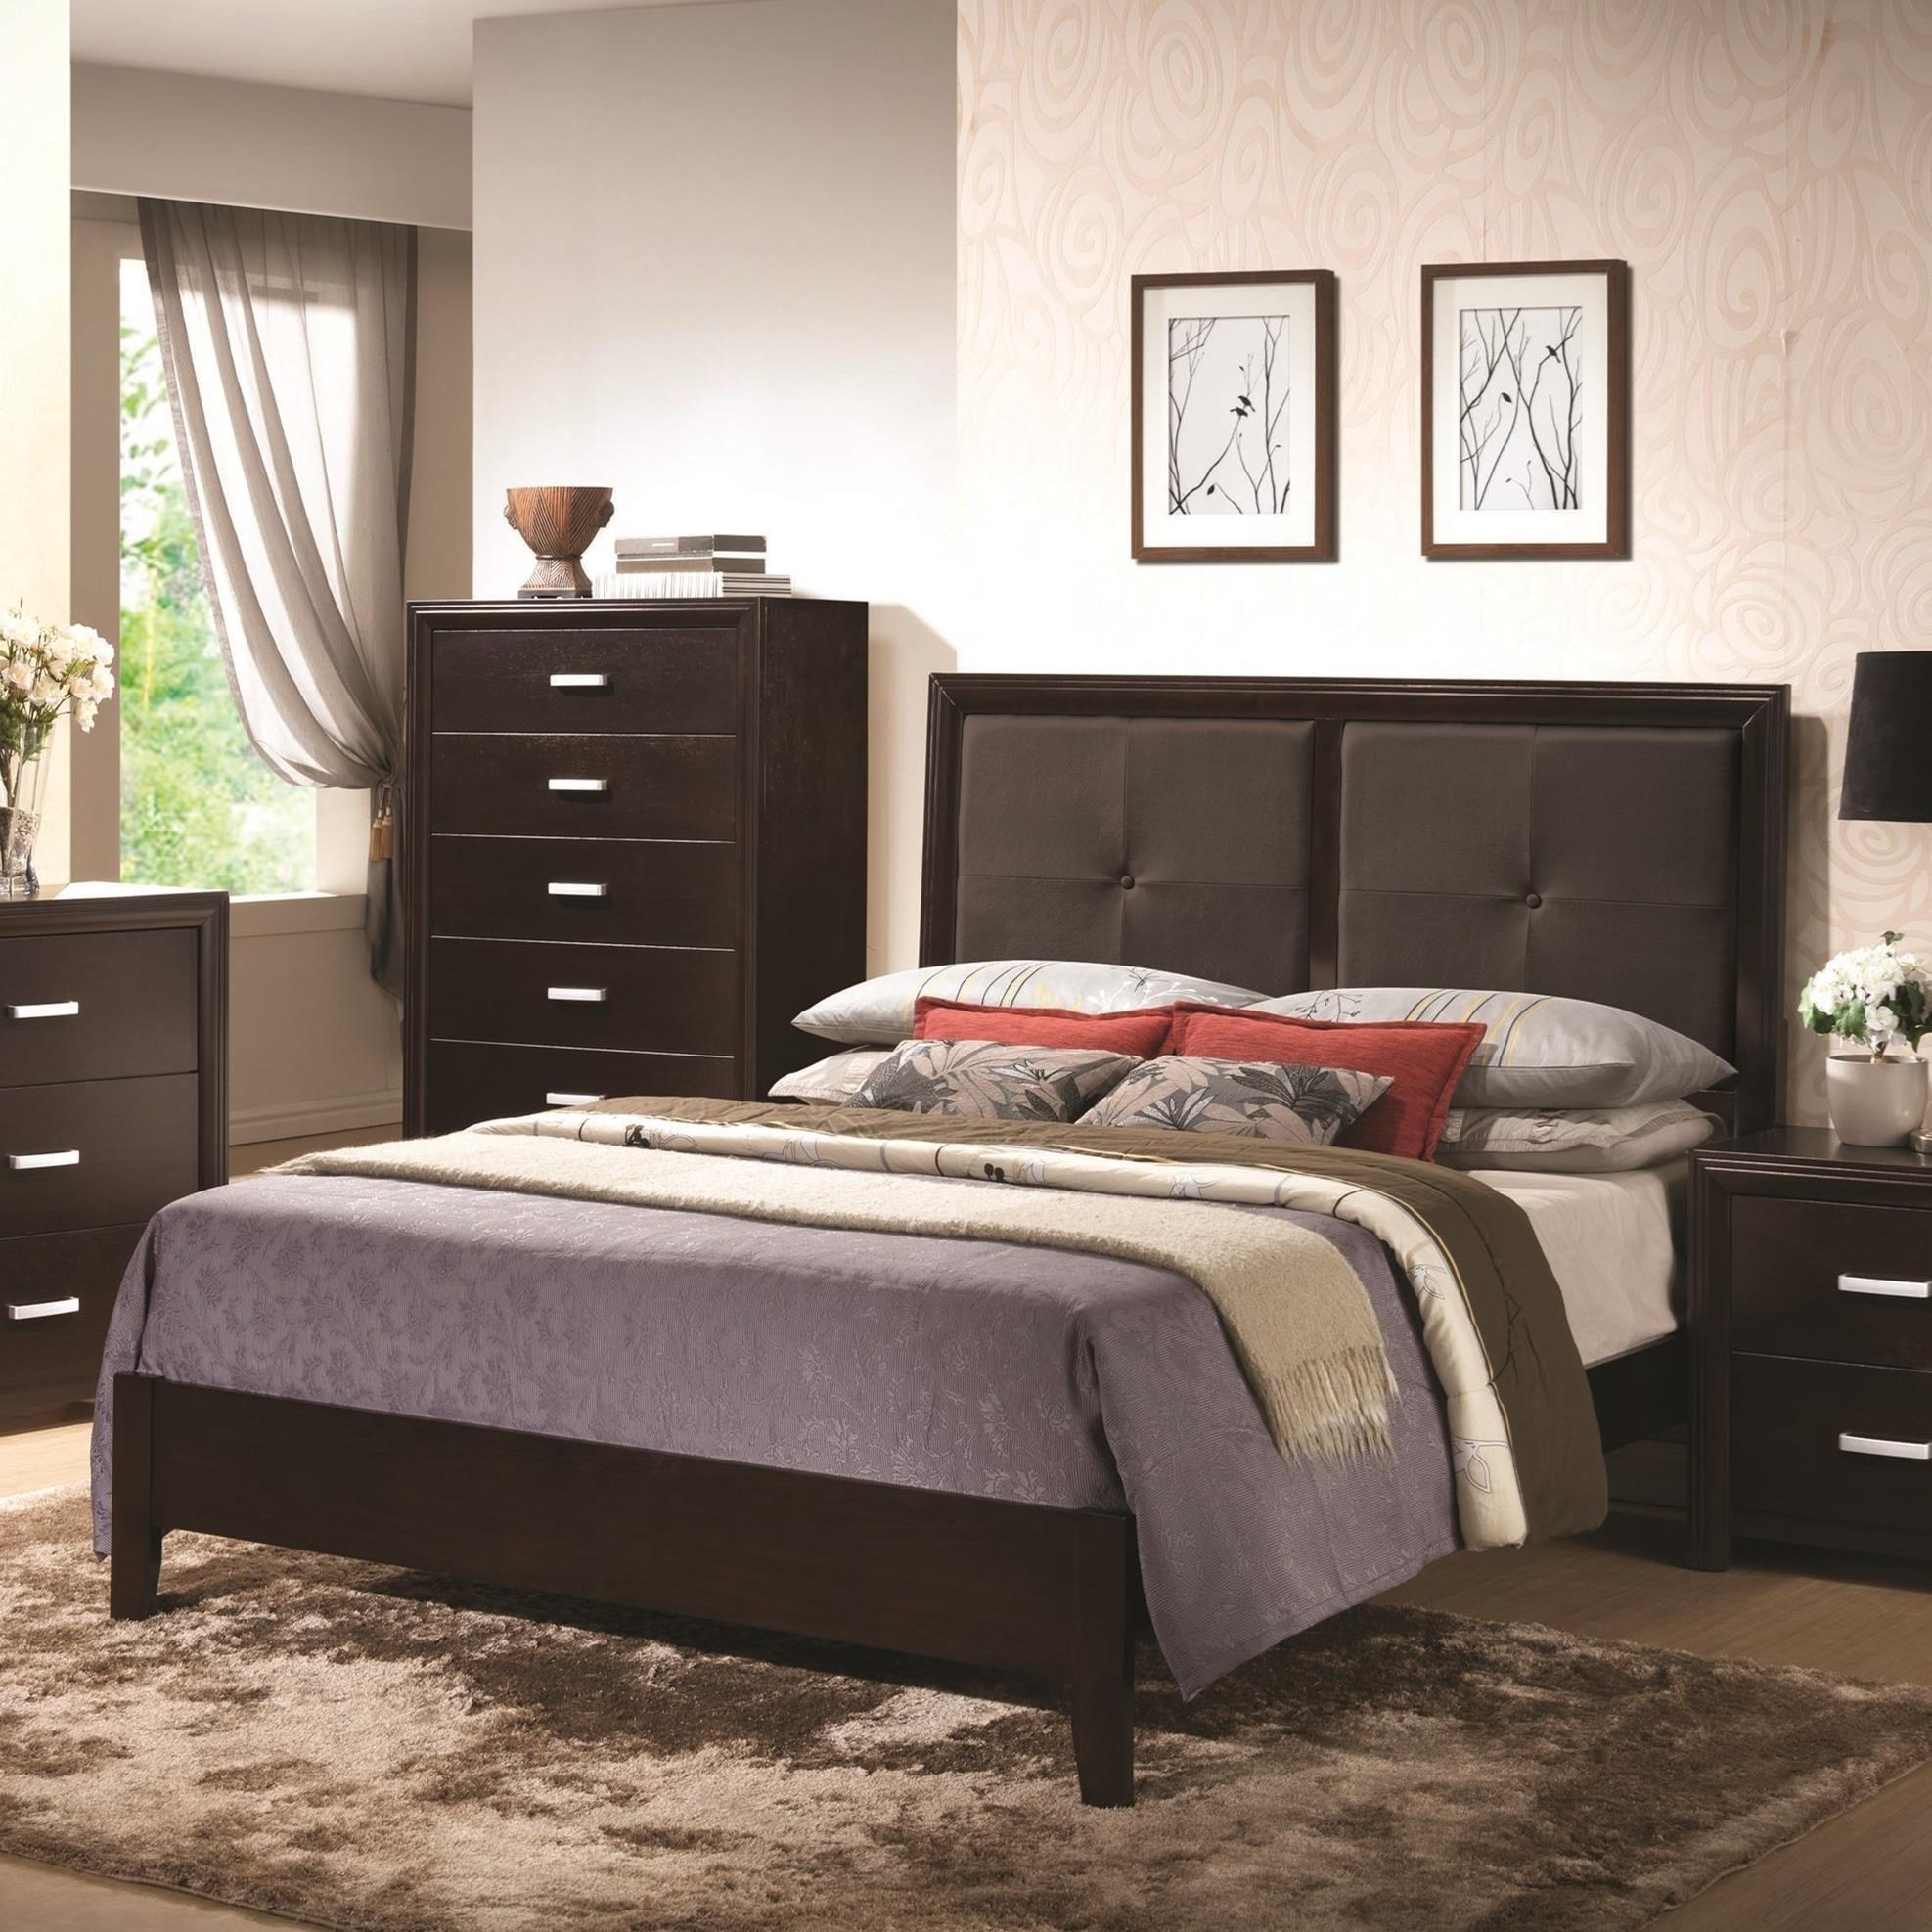 Coaster Andreas Queen Bed - Item Number: 202471QN